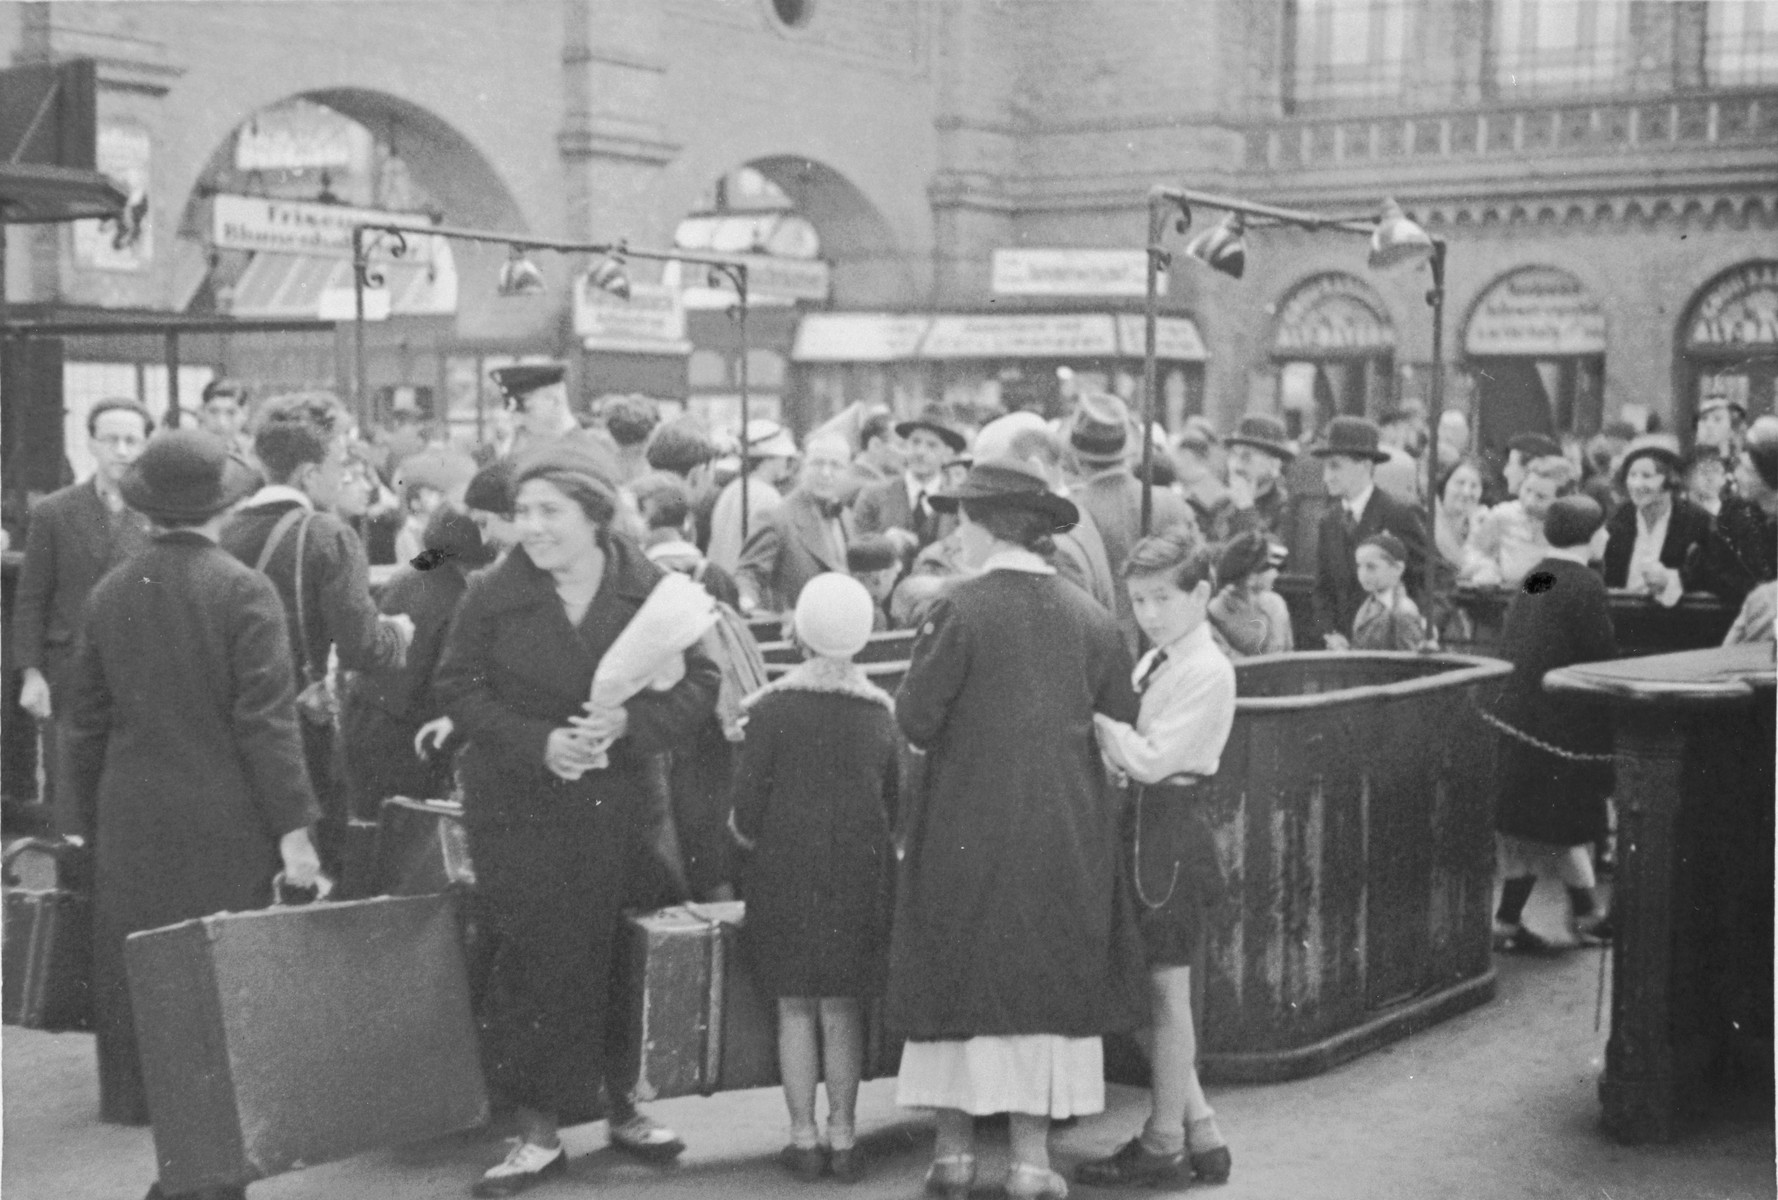 A group of Jewish children from Germany are reunited with their families at the train station in Berlin after their stay at a Kinderlager [children's recreational summer camp] in Horserod, Denmark.    In 1935-36 Norbert Wollheim was involved in organizing groups of German Jewish youth to attend a summer camp in Denmark.